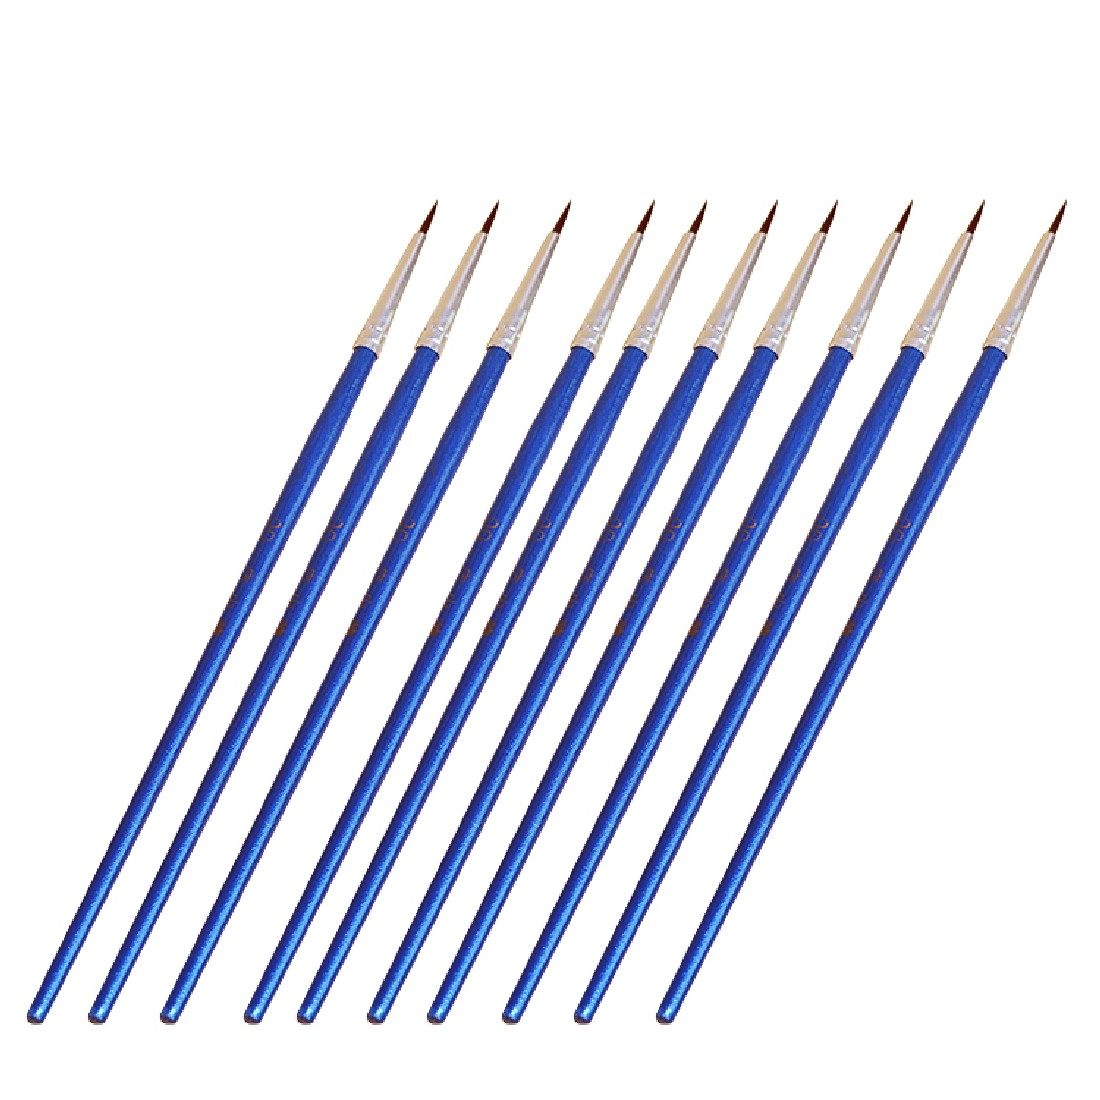 10pcs/Set Long Tail Nylonhair Hook Line Pen Blue Baton Art Supplies Drawing Art Pen Paint Brush Nylon Brush Painting Pen